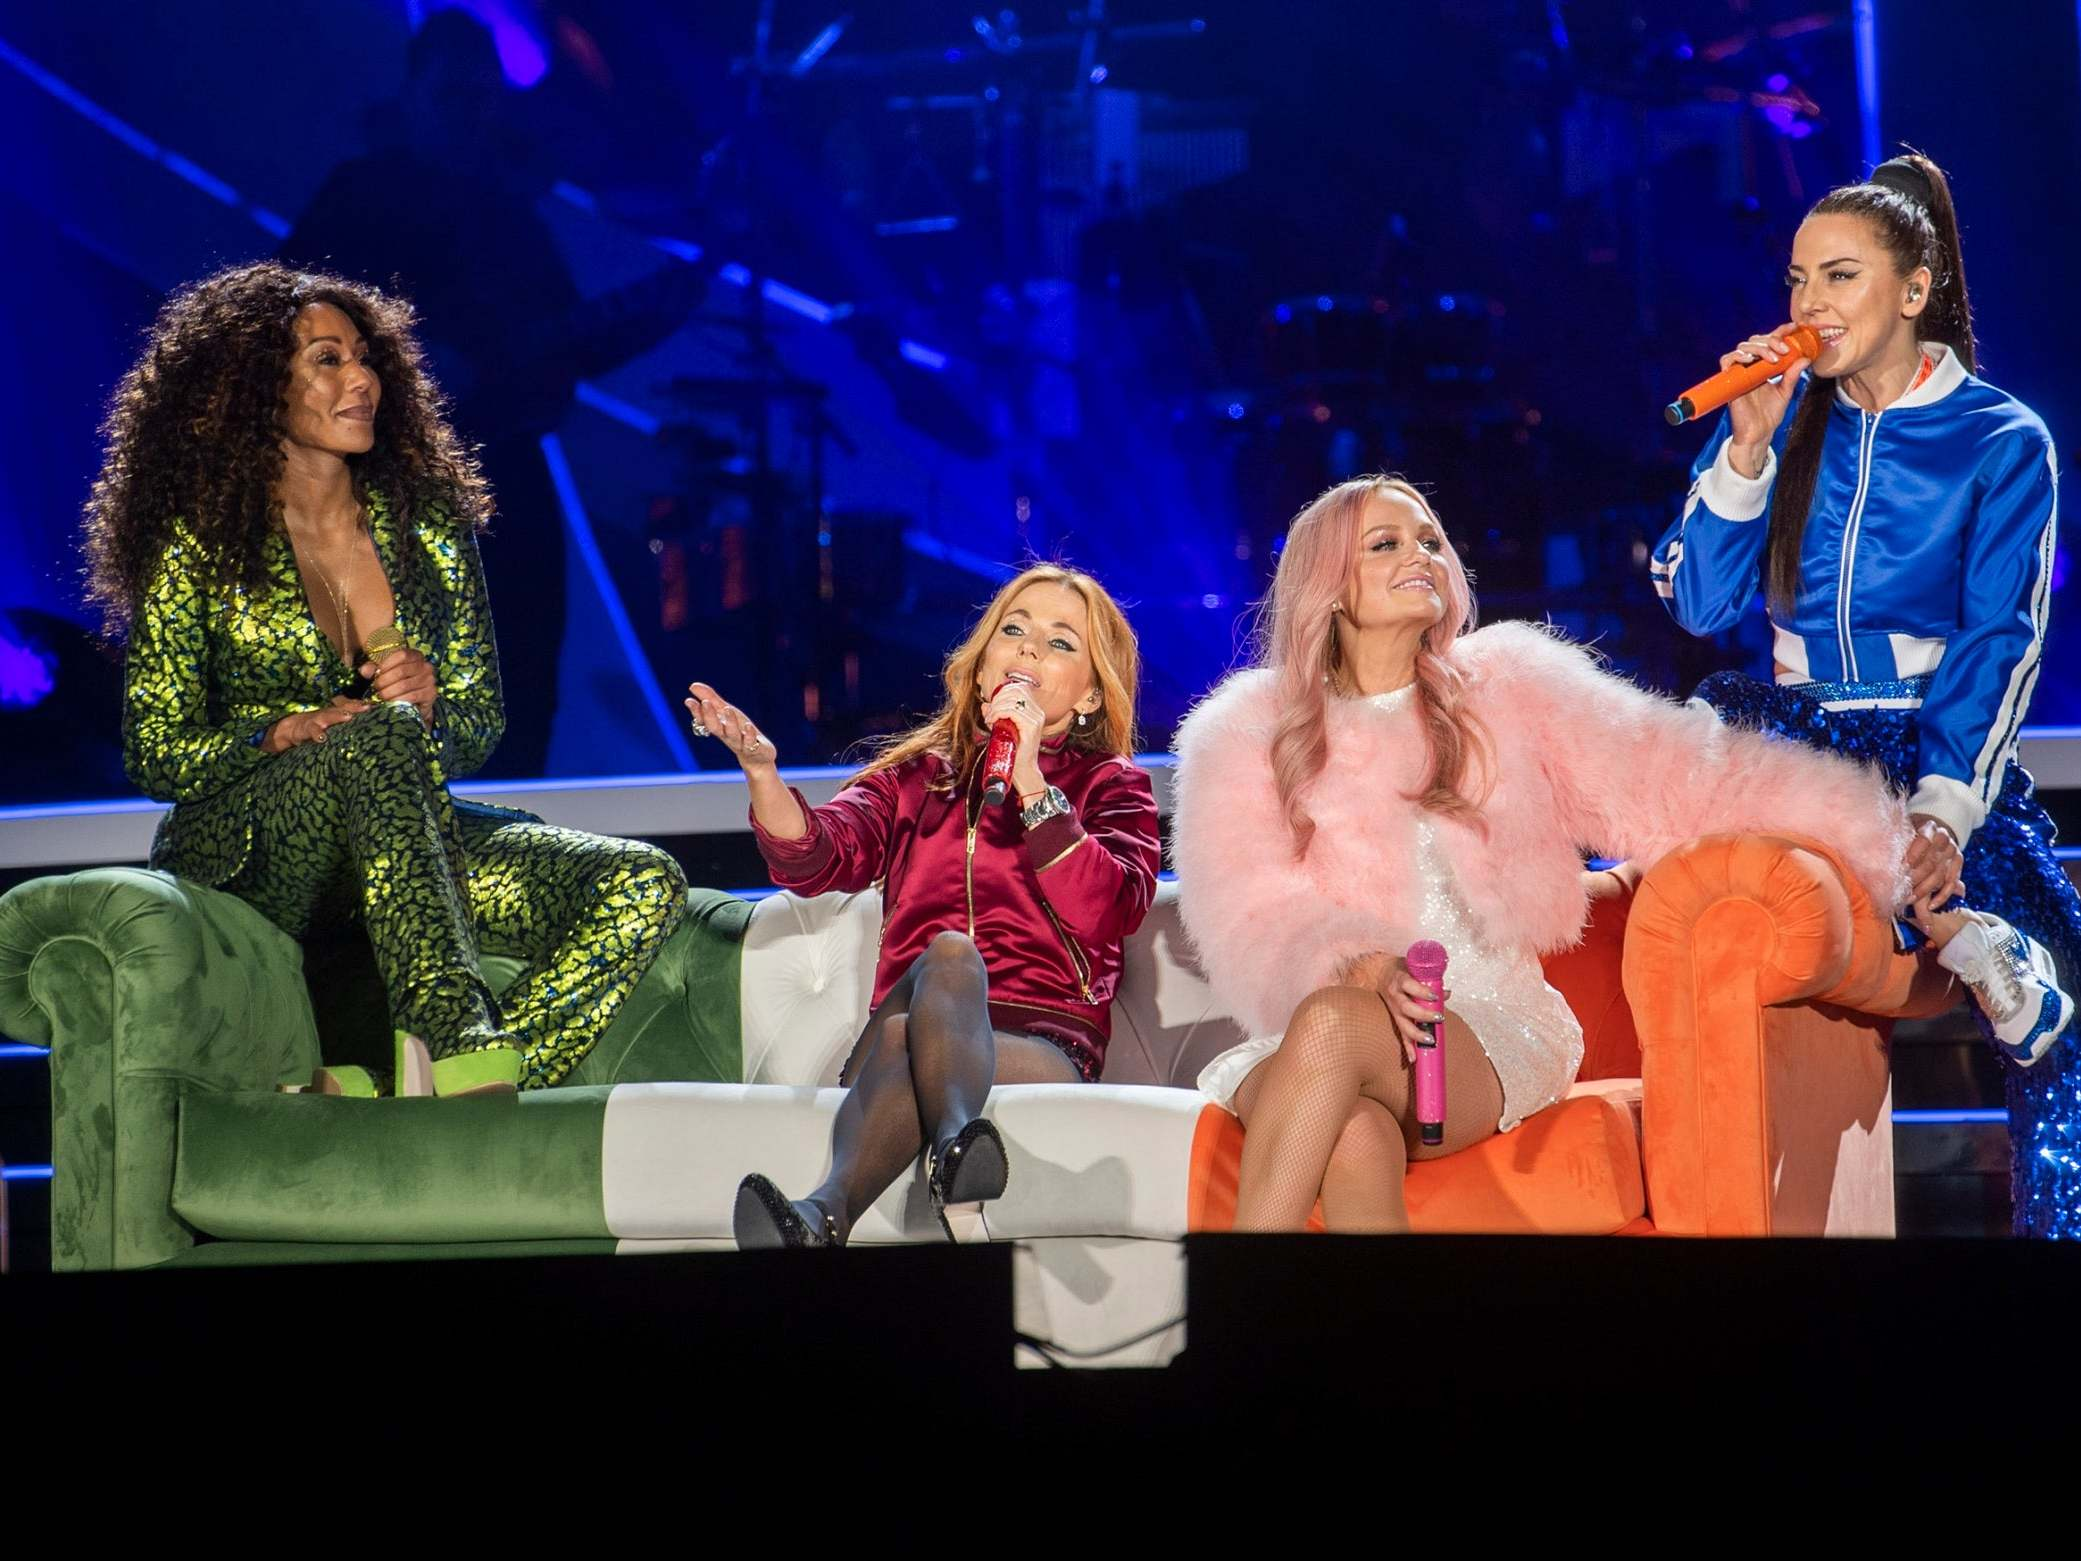 47f821a76aa Spice Girls fans demand refunds after sound problems continue on UK  comeback tour | The Independent